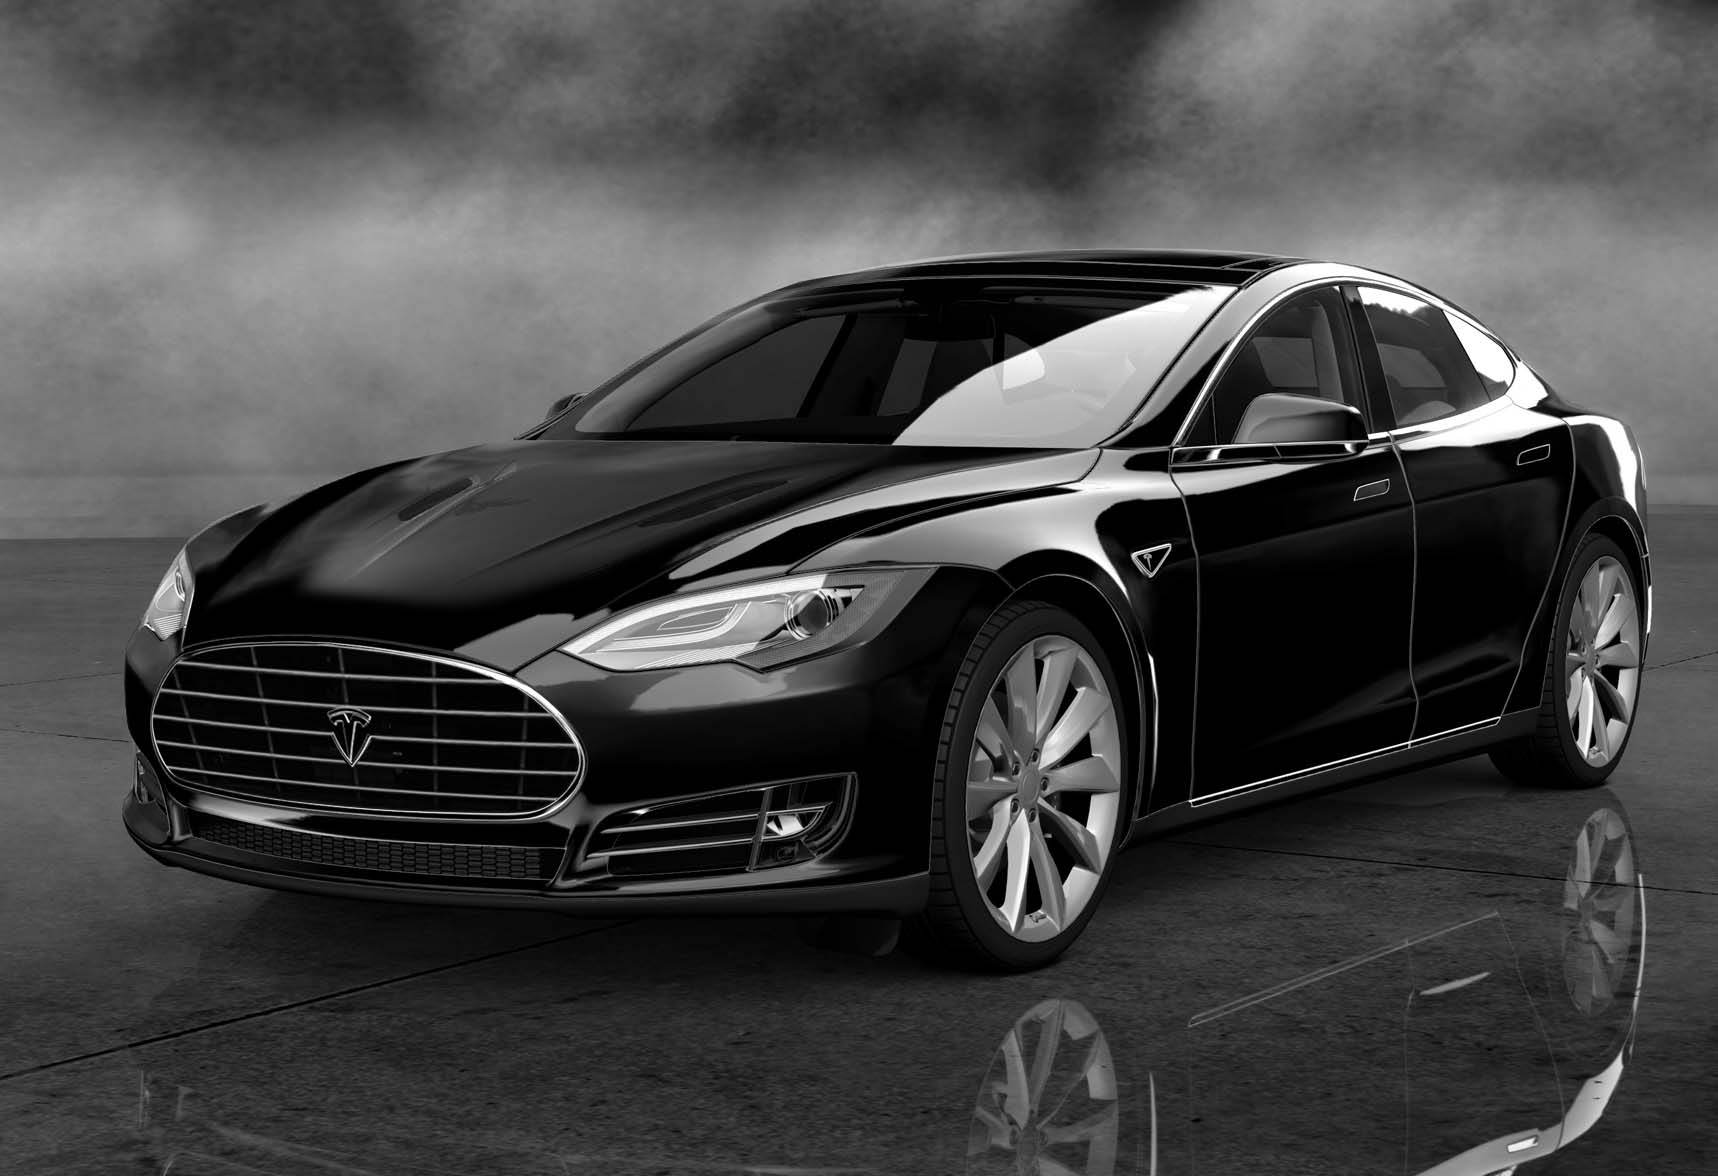 tesla model s aftermarket body kit reviews. Black Bedroom Furniture Sets. Home Design Ideas